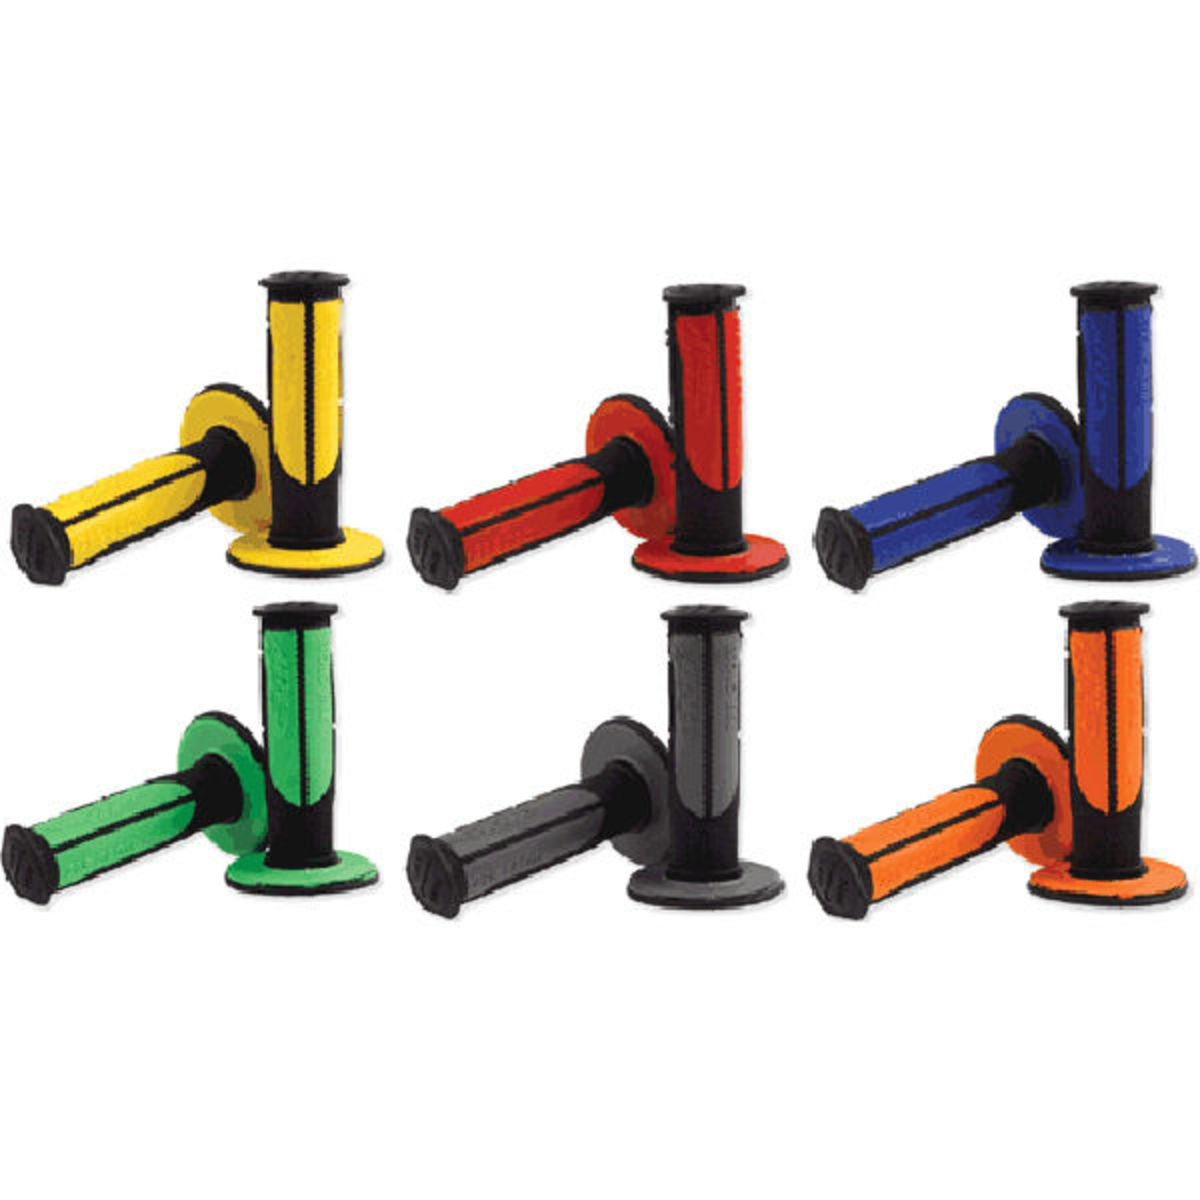 Affordable Pro Grip 798 MX RVGS Gel Grips, under $20